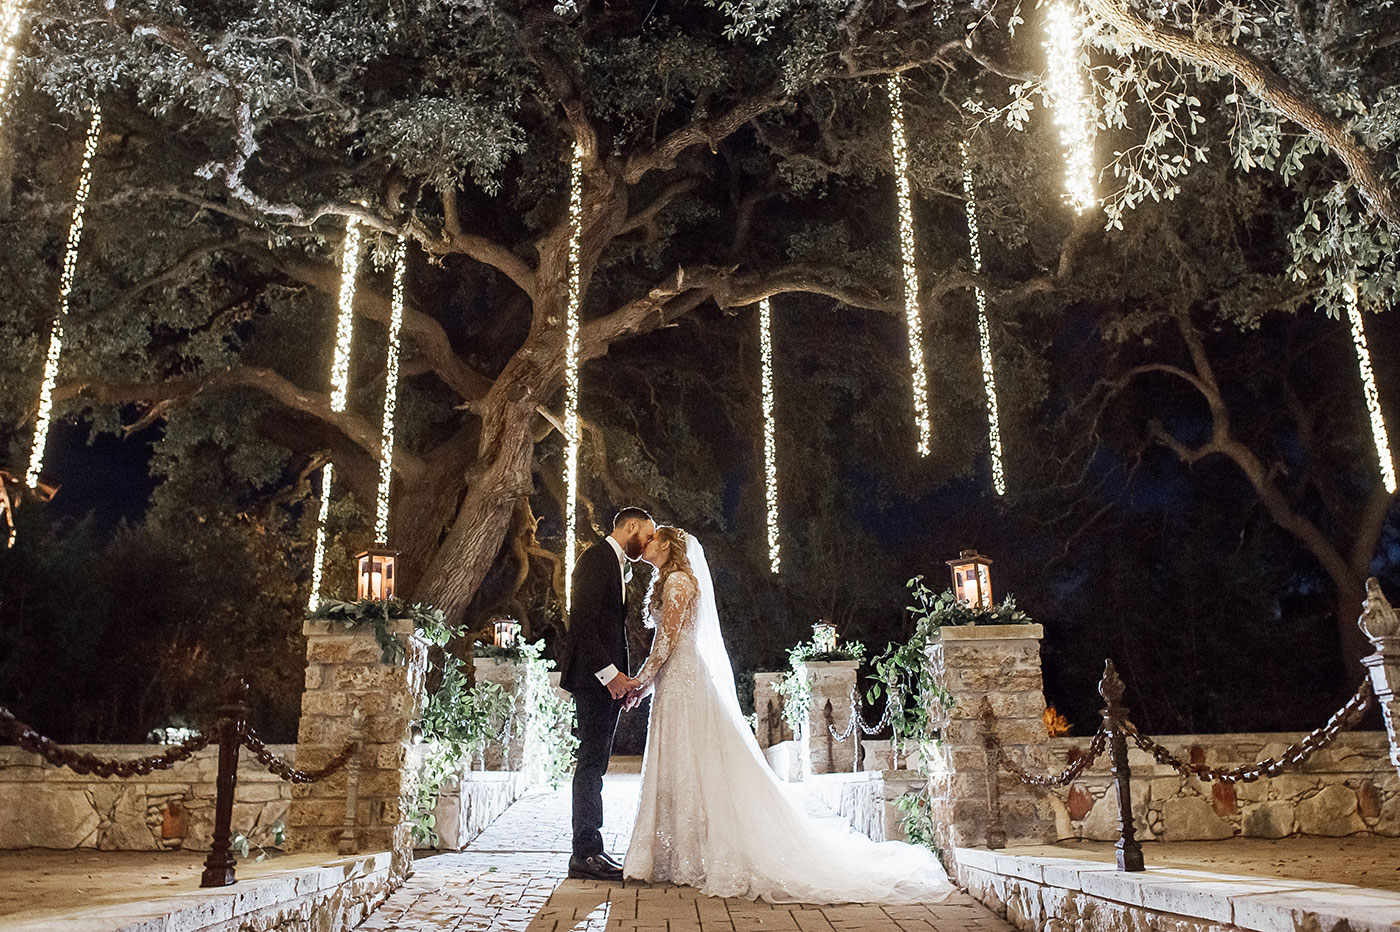 From The Bouquets In Bridesmaids Hands To Tall Elaborate Arbor Outside Wedding S Theme Transported Guests As They Breathed Scents And